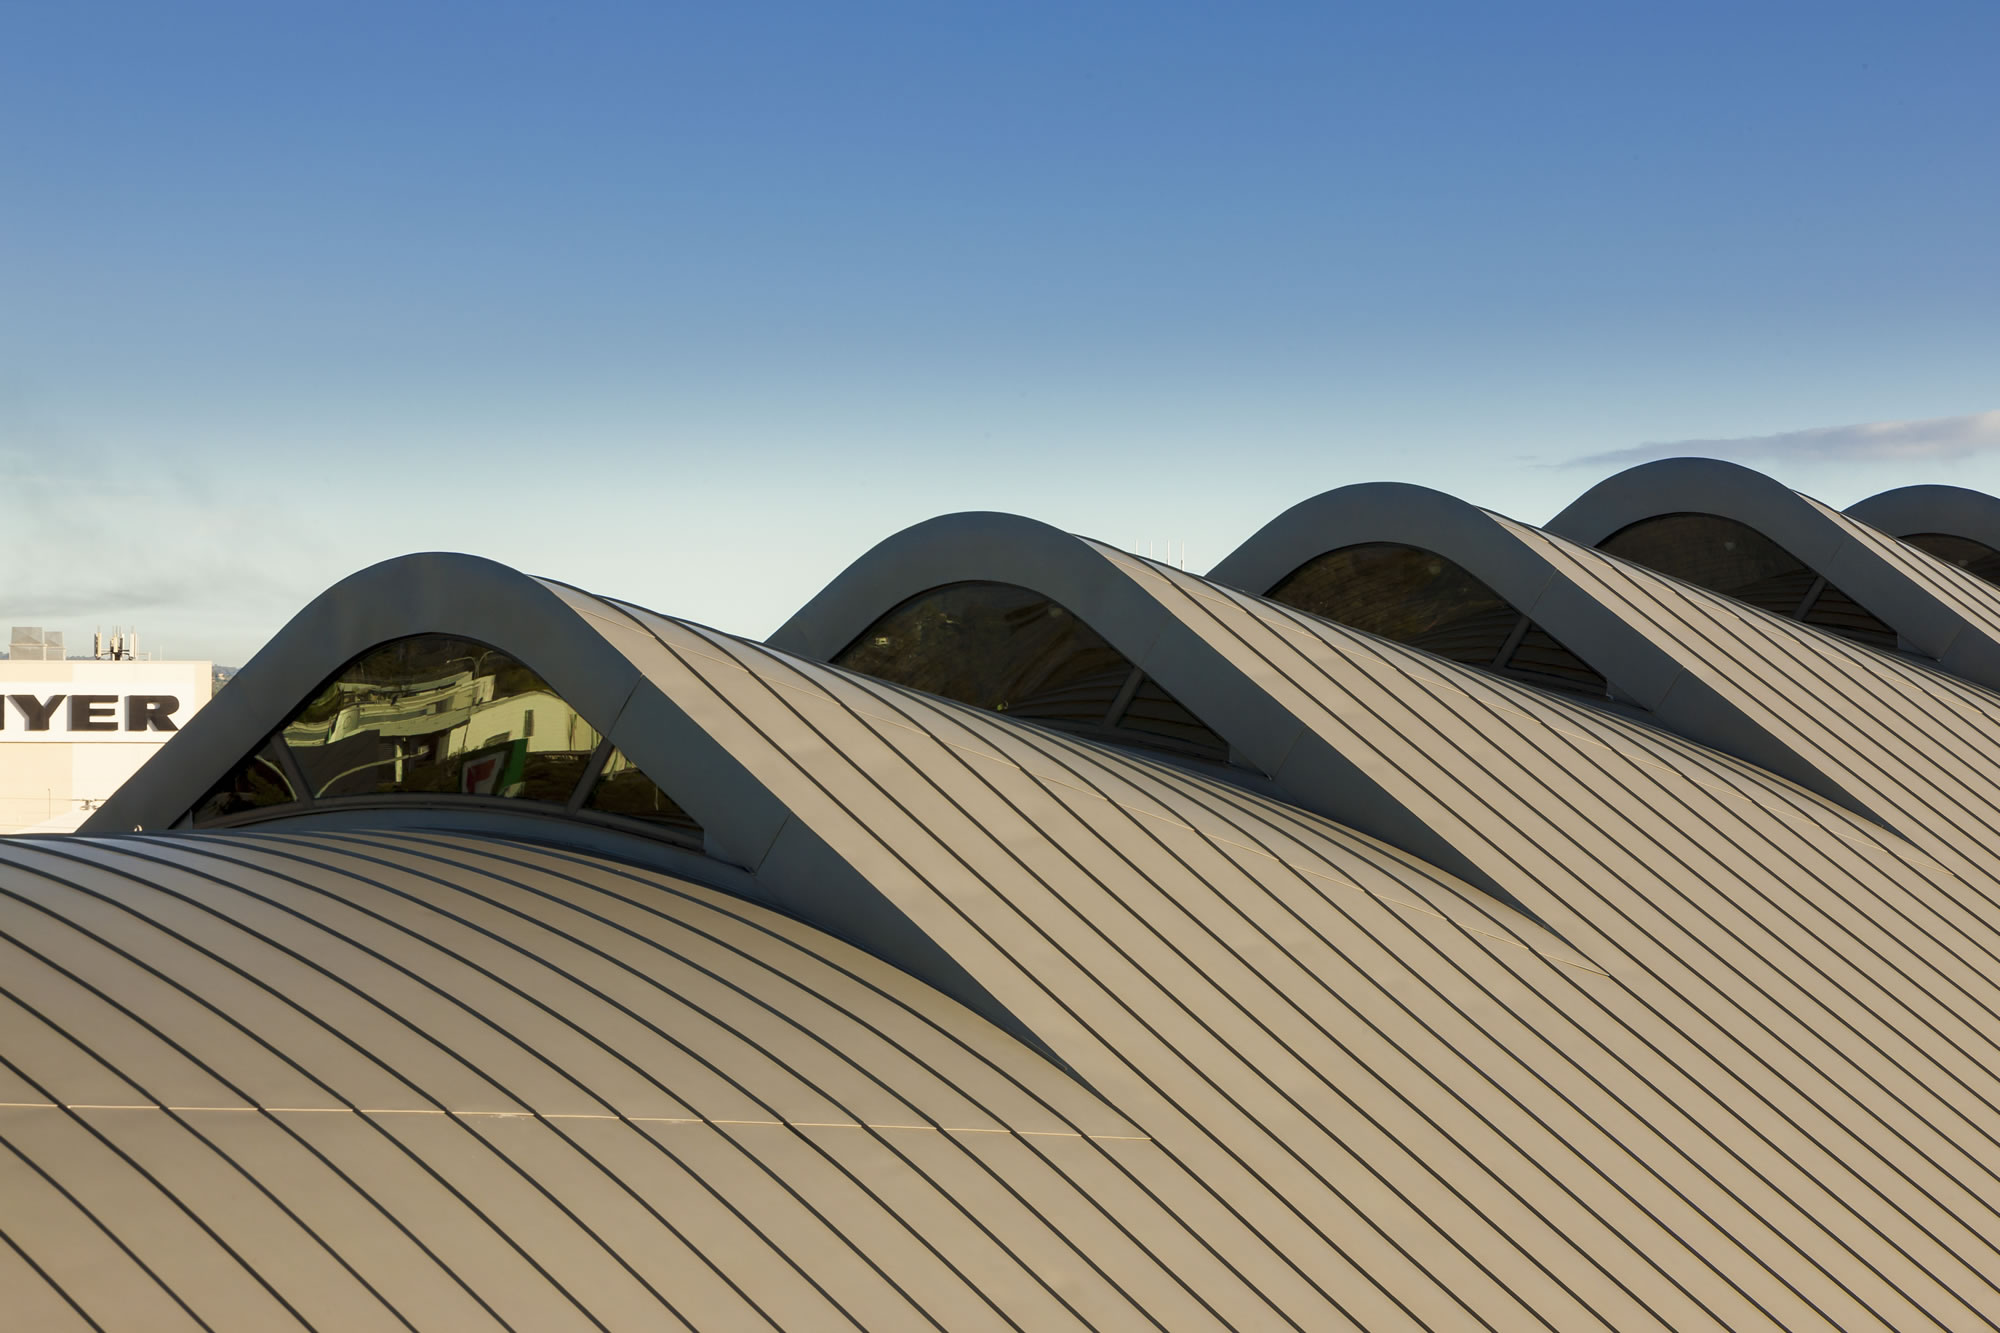 Roofing Range Of Material Options Zc Technical